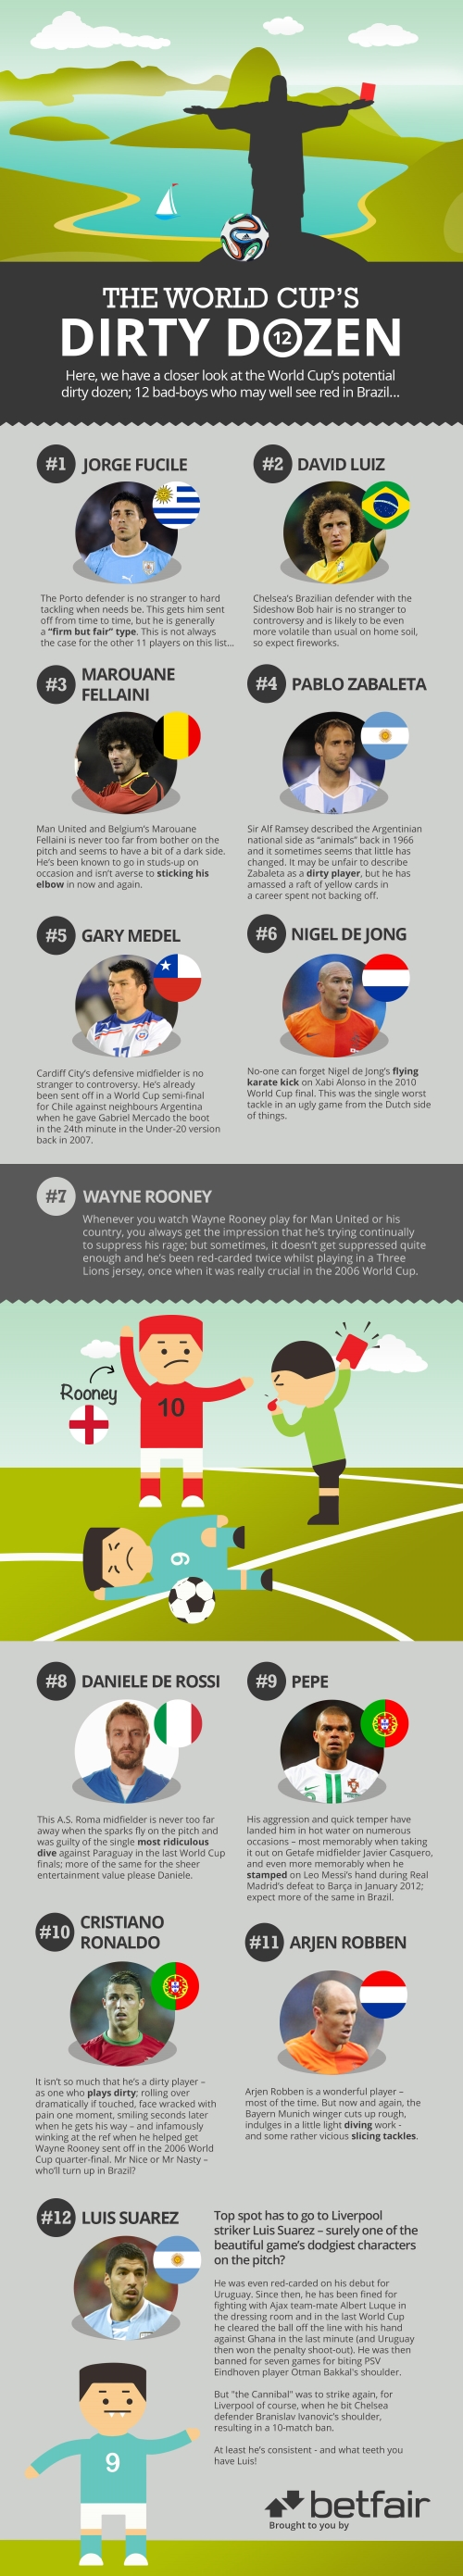 world cup 2014 infographic The World Cups Dirty Dozen: 12 Bad Boys Who May Well See Red In Brazil [INFOGRAPHIC]